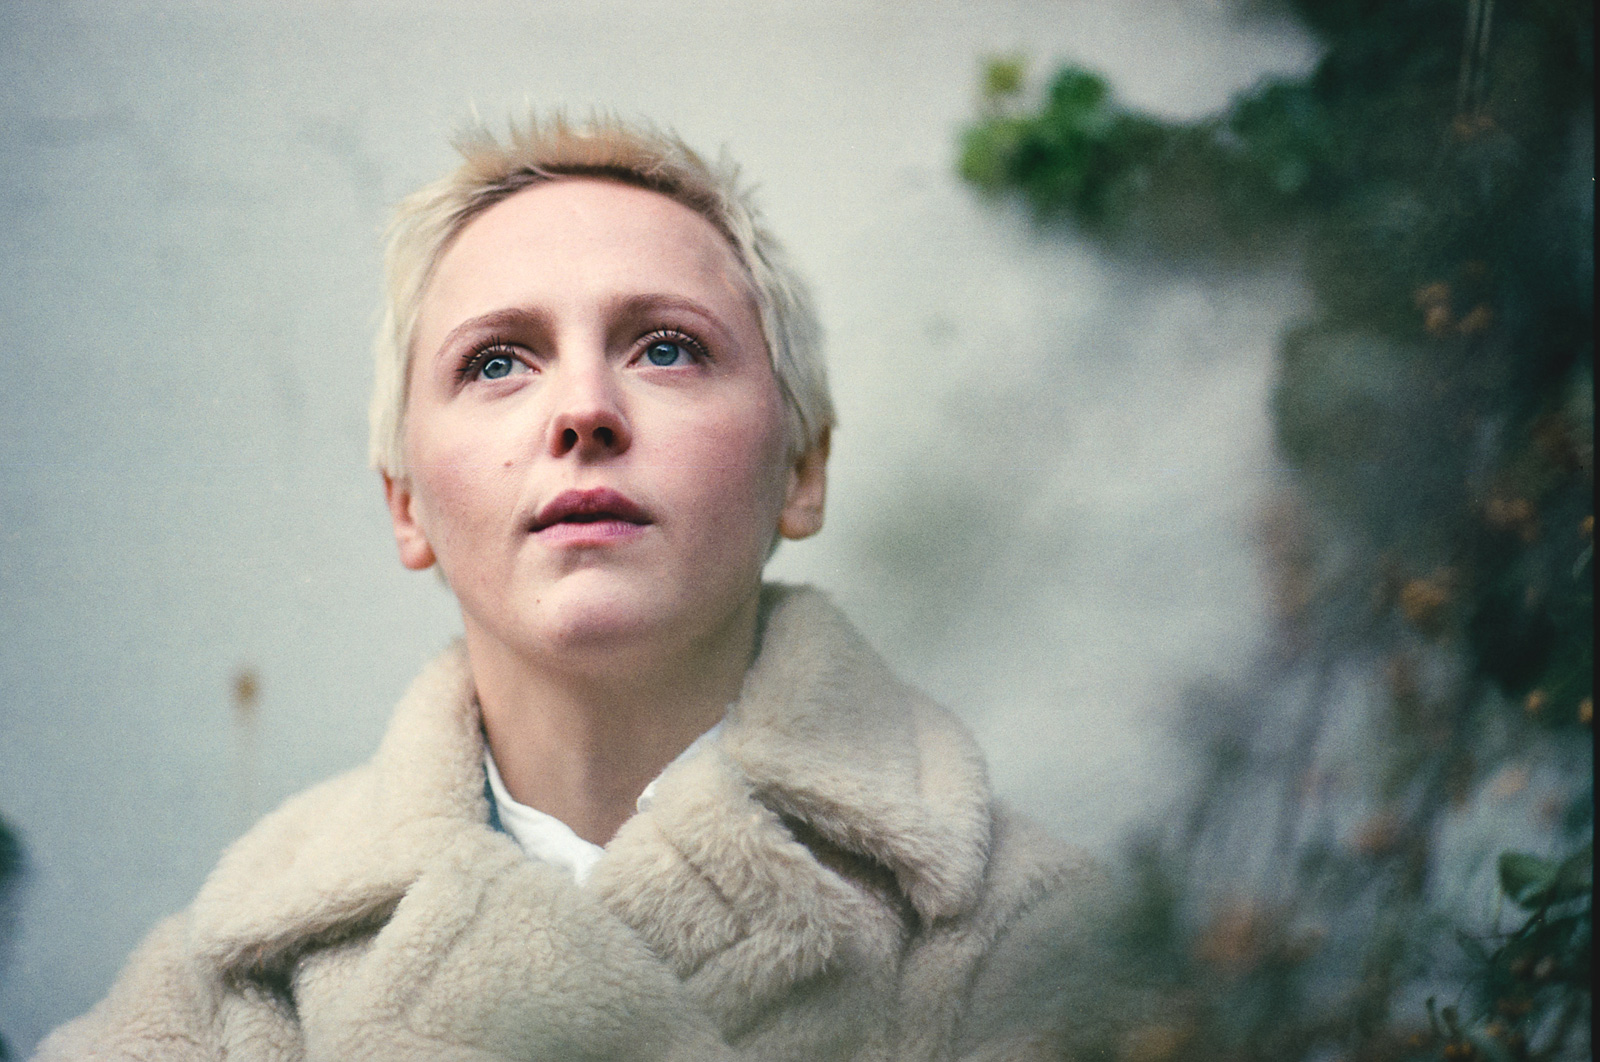 Laura Marling, Shamir, CHIC feat. Nile Rodgers to play Oya Festival 2015